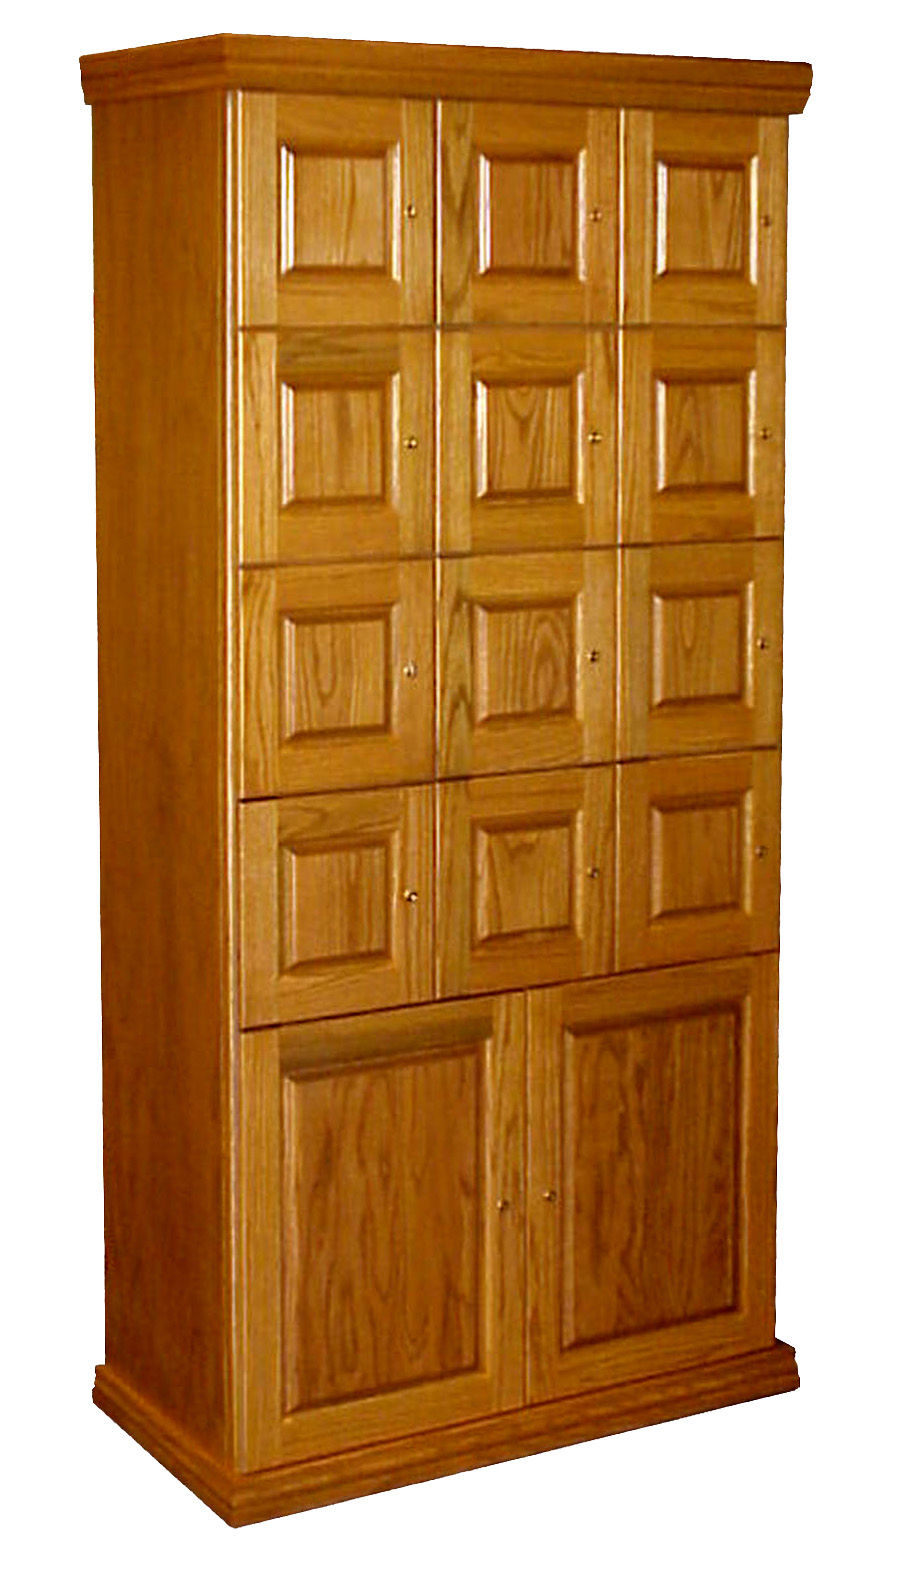 wardrobe detail clothes product almirah prices iron metal bedroom furniture lockers cheap steel